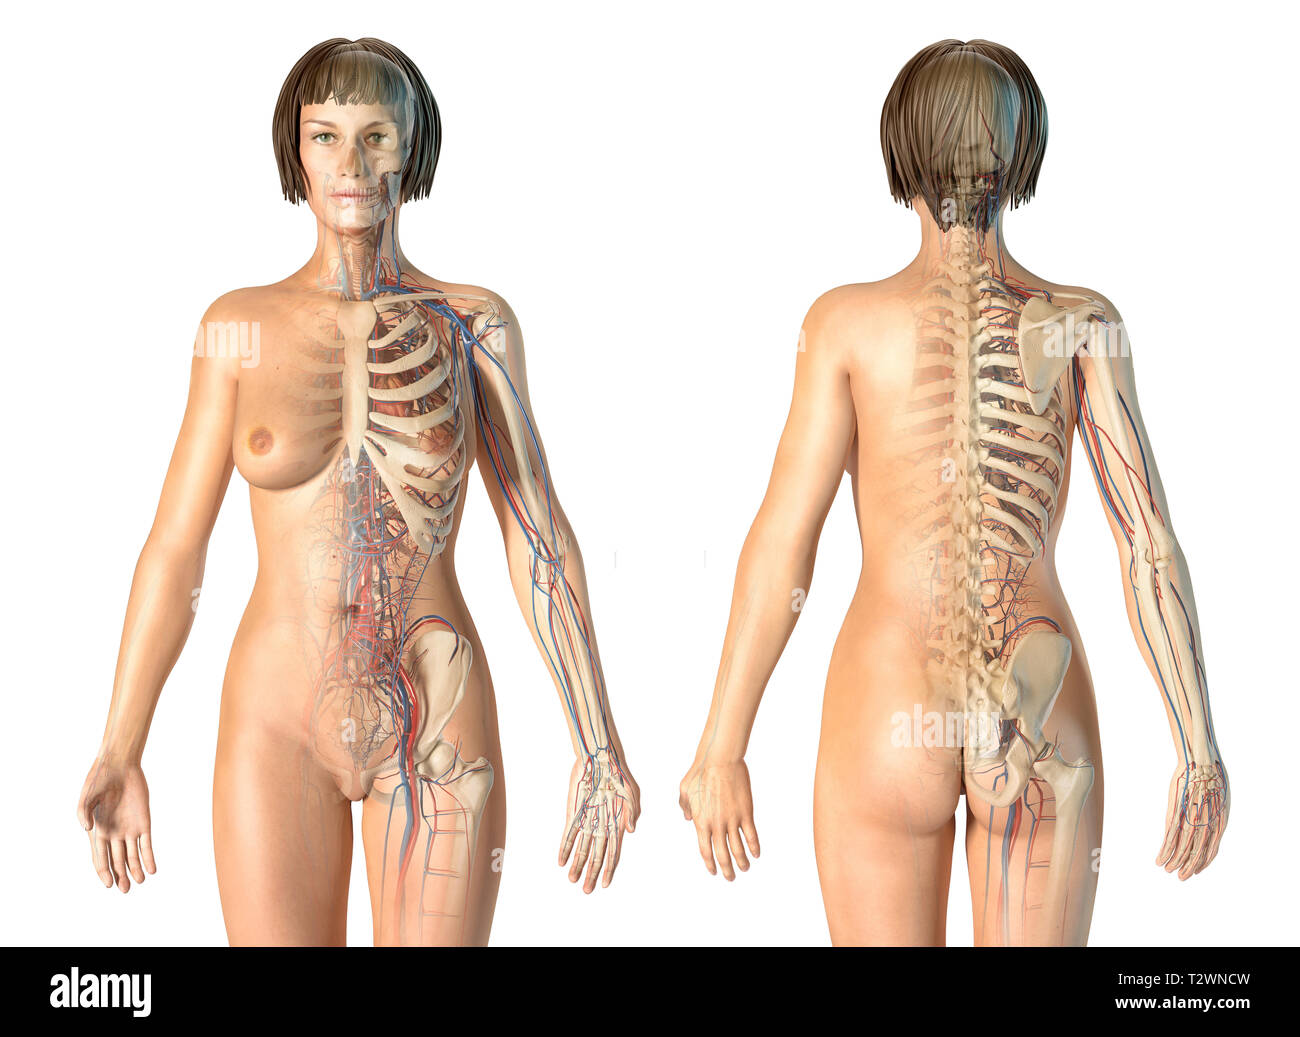 Woman anatomy cardiovascular system with skeleton, rear and front views. On white background. - Stock Image